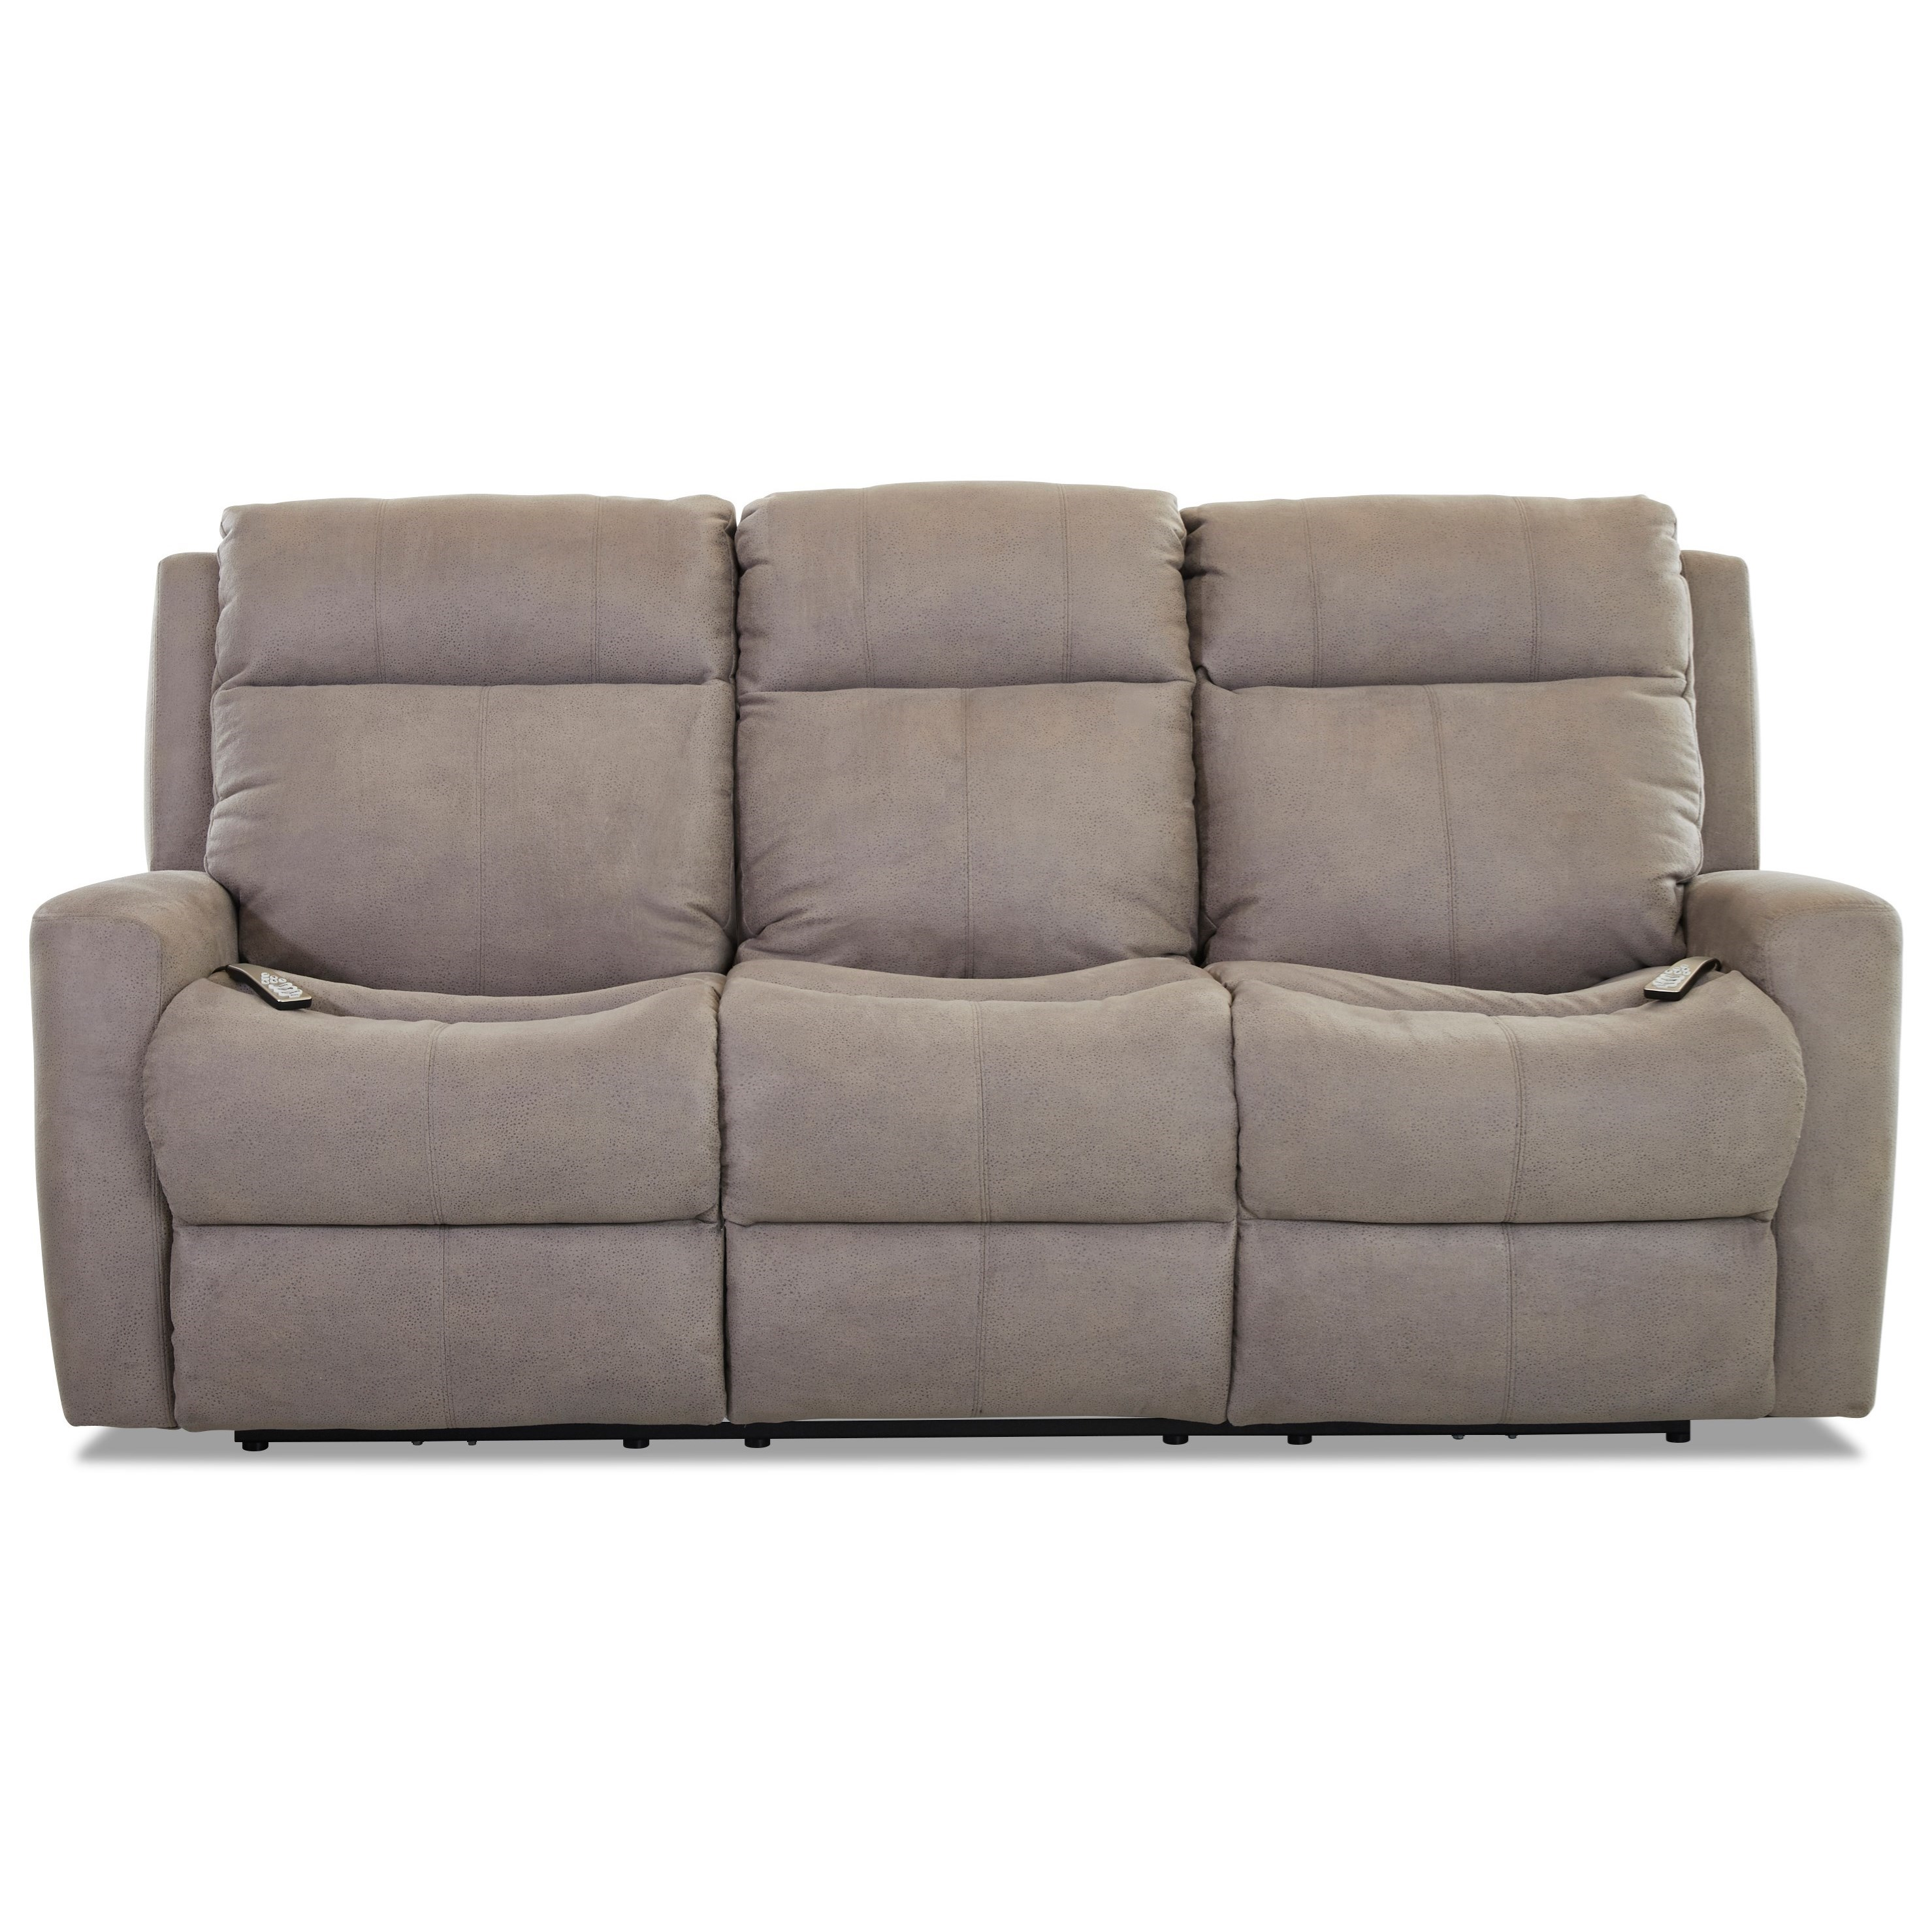 Brooks Power Recline Sofa w/ Pwr Head & Massage by Klaussner at Northeast Factory Direct